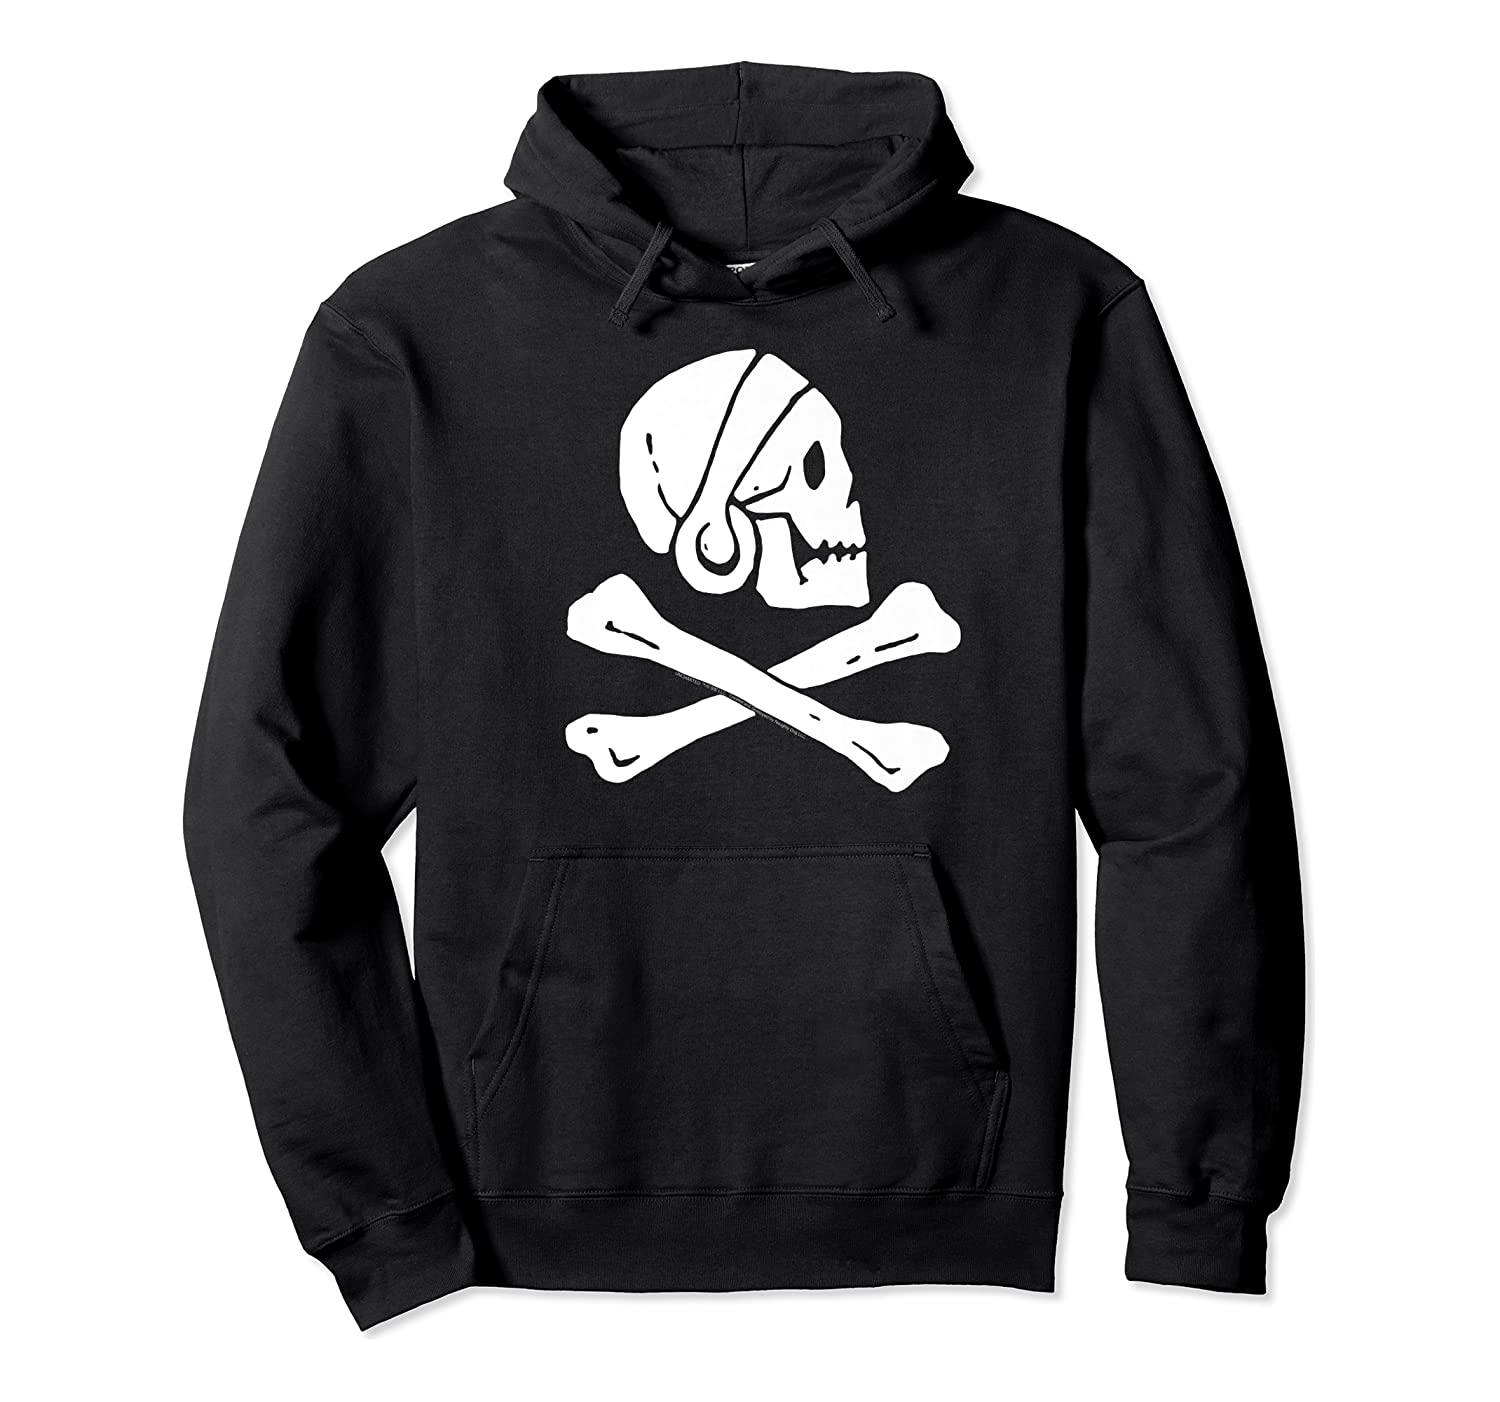 Uncharted Henry Avery Pirate Flag Shirt Unisex Pullover Hoodie